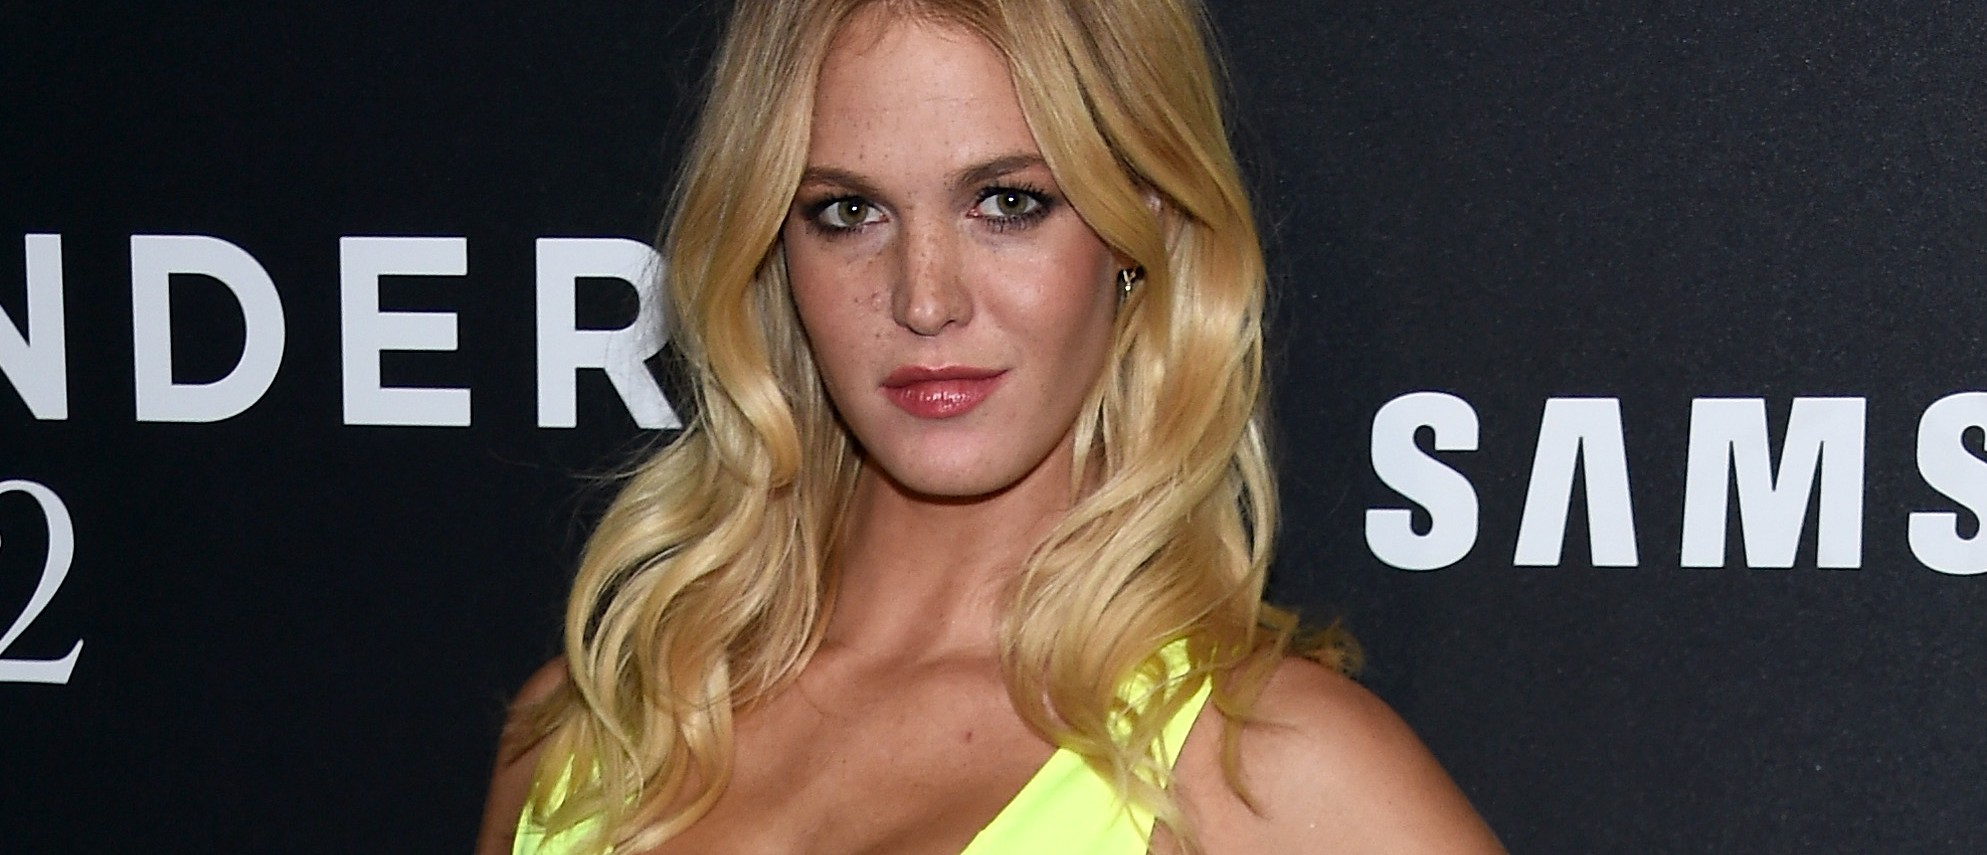 Erin Heatherton posts nude photo on Instagram